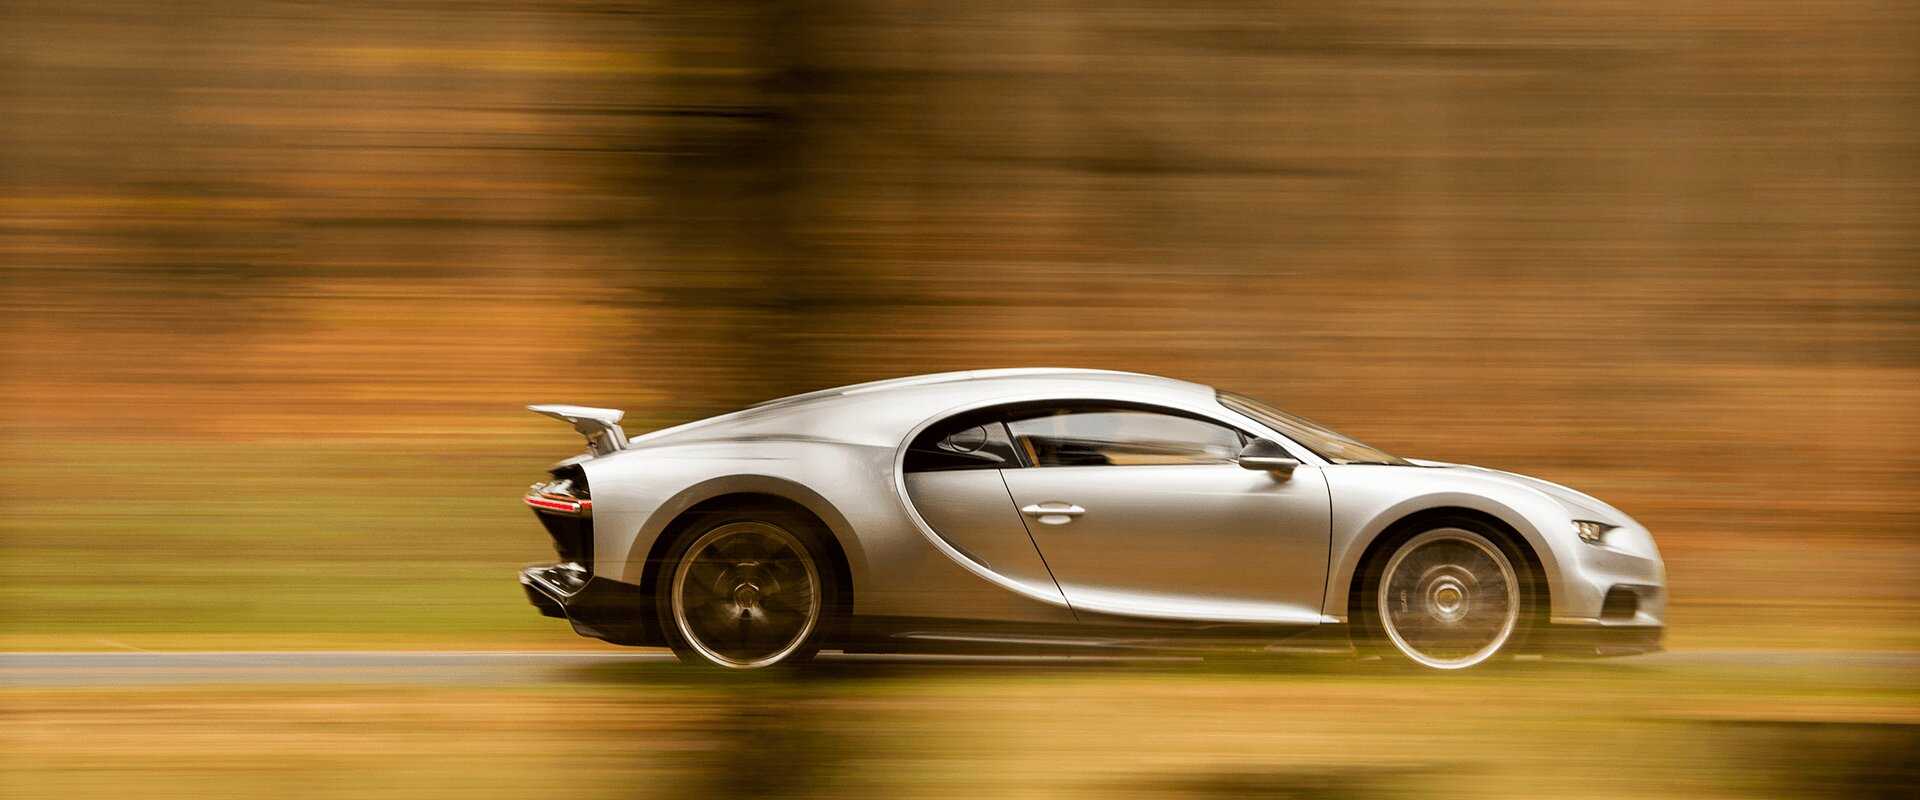 Bugatti, Legal Notice, Legal, Notice, Legal Notes